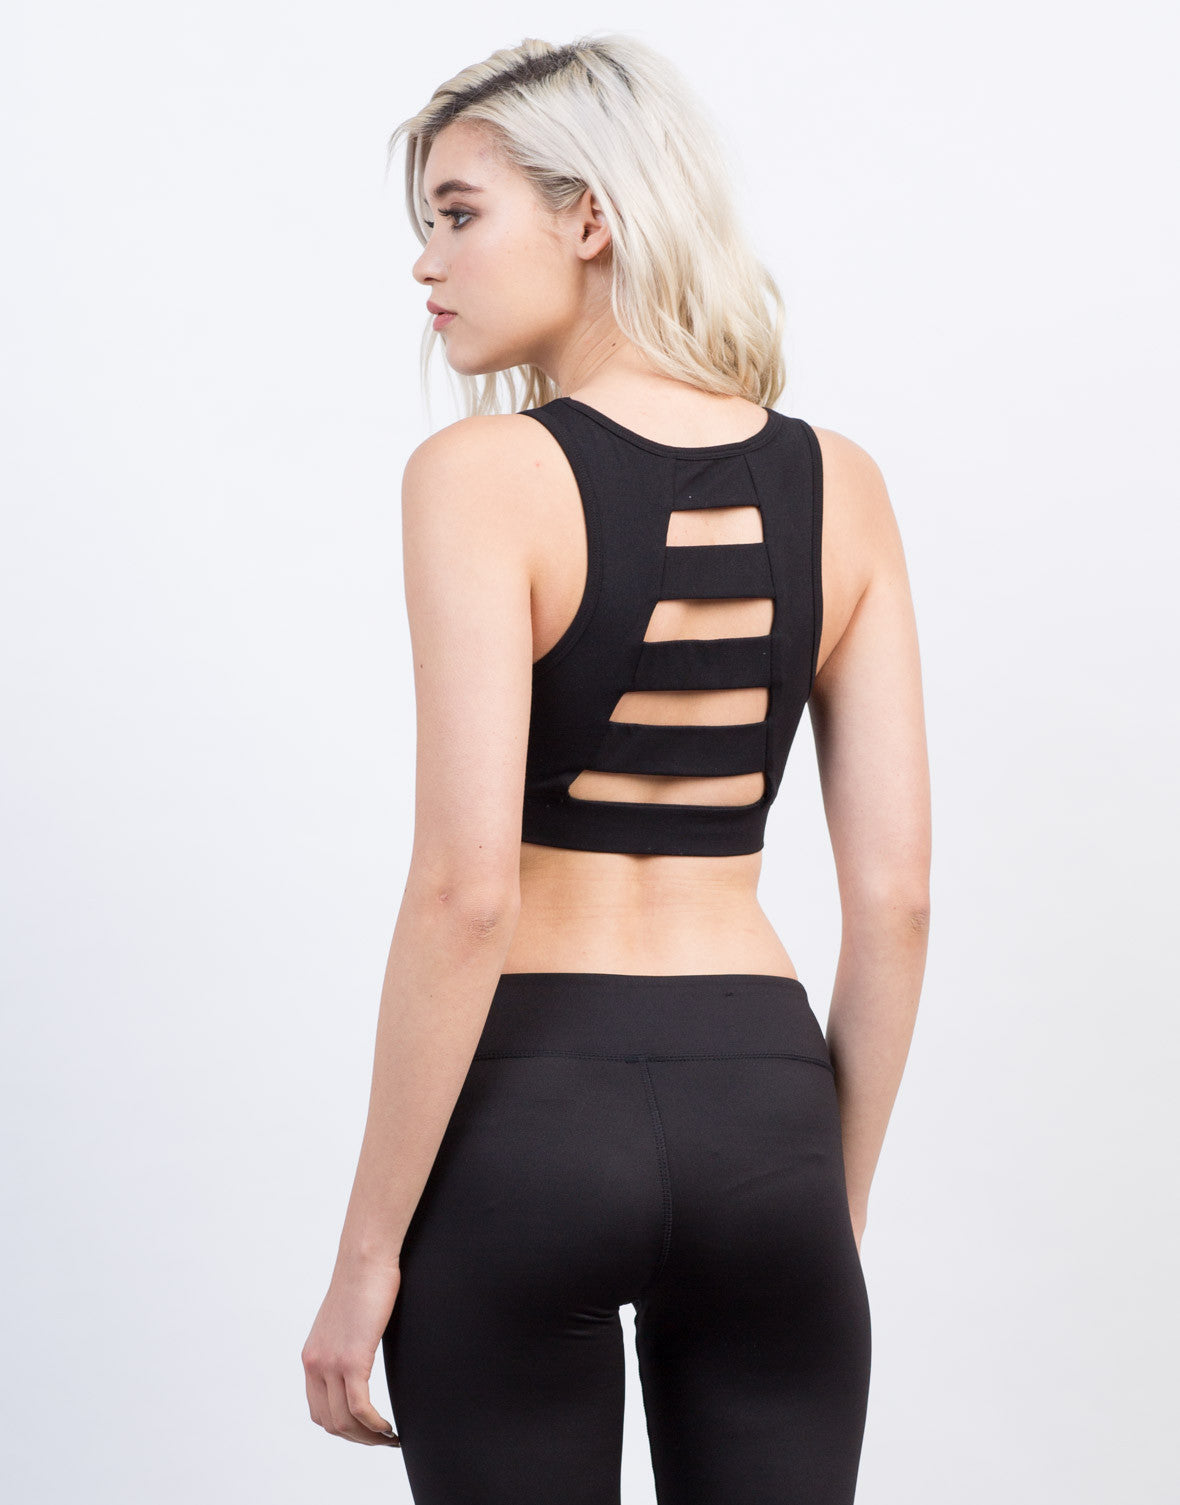 Black Ladder Sports Bra